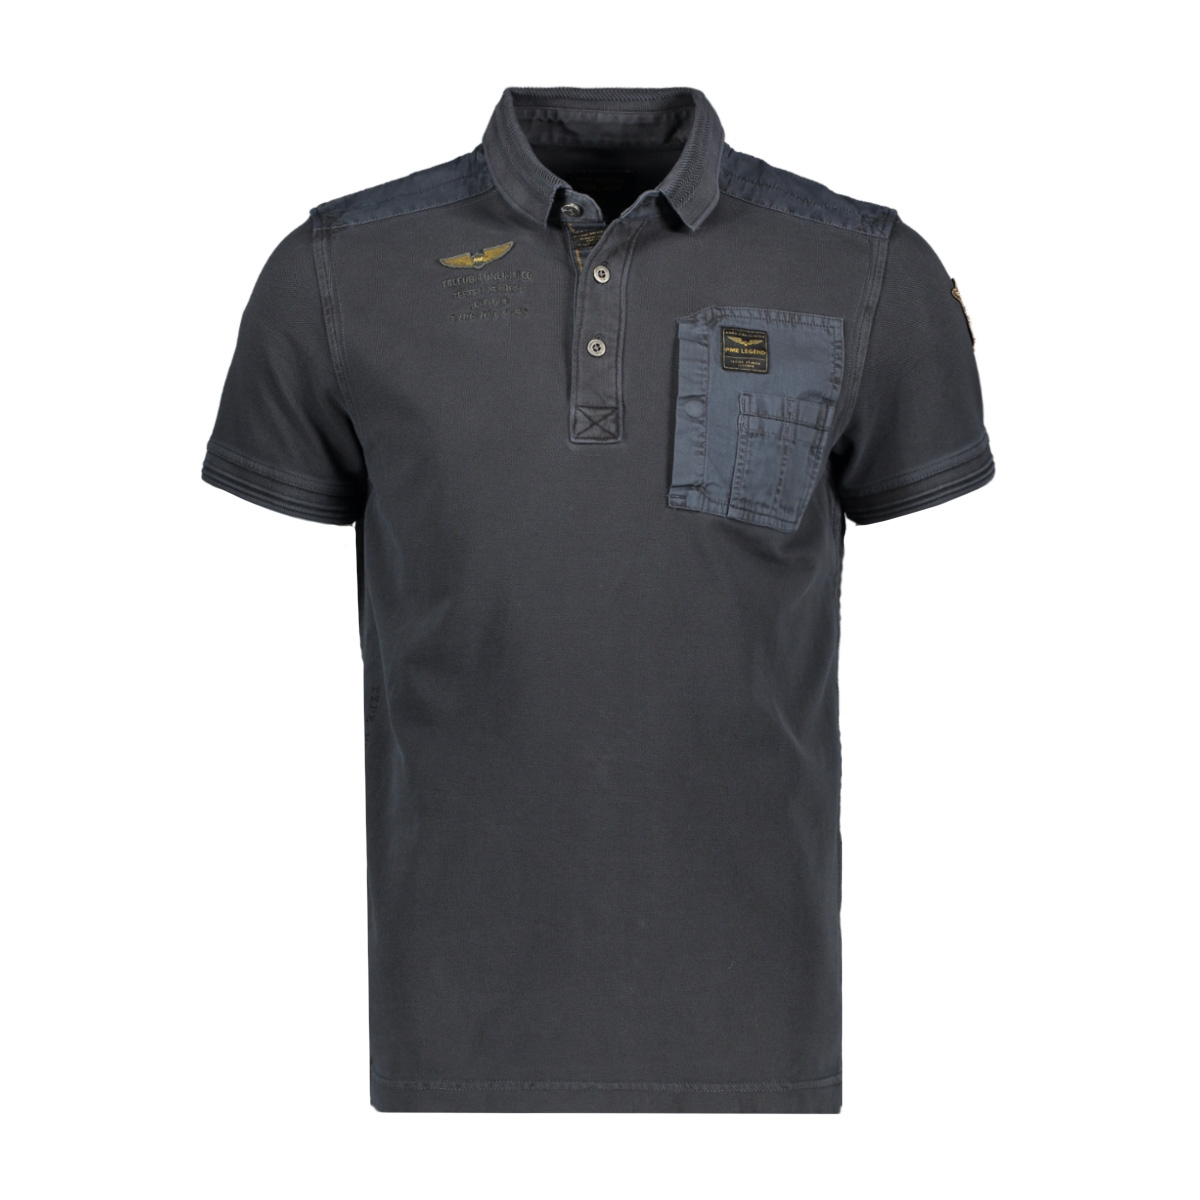 rugged pique short sleeve polo ppss202862 pme legend polo 5287